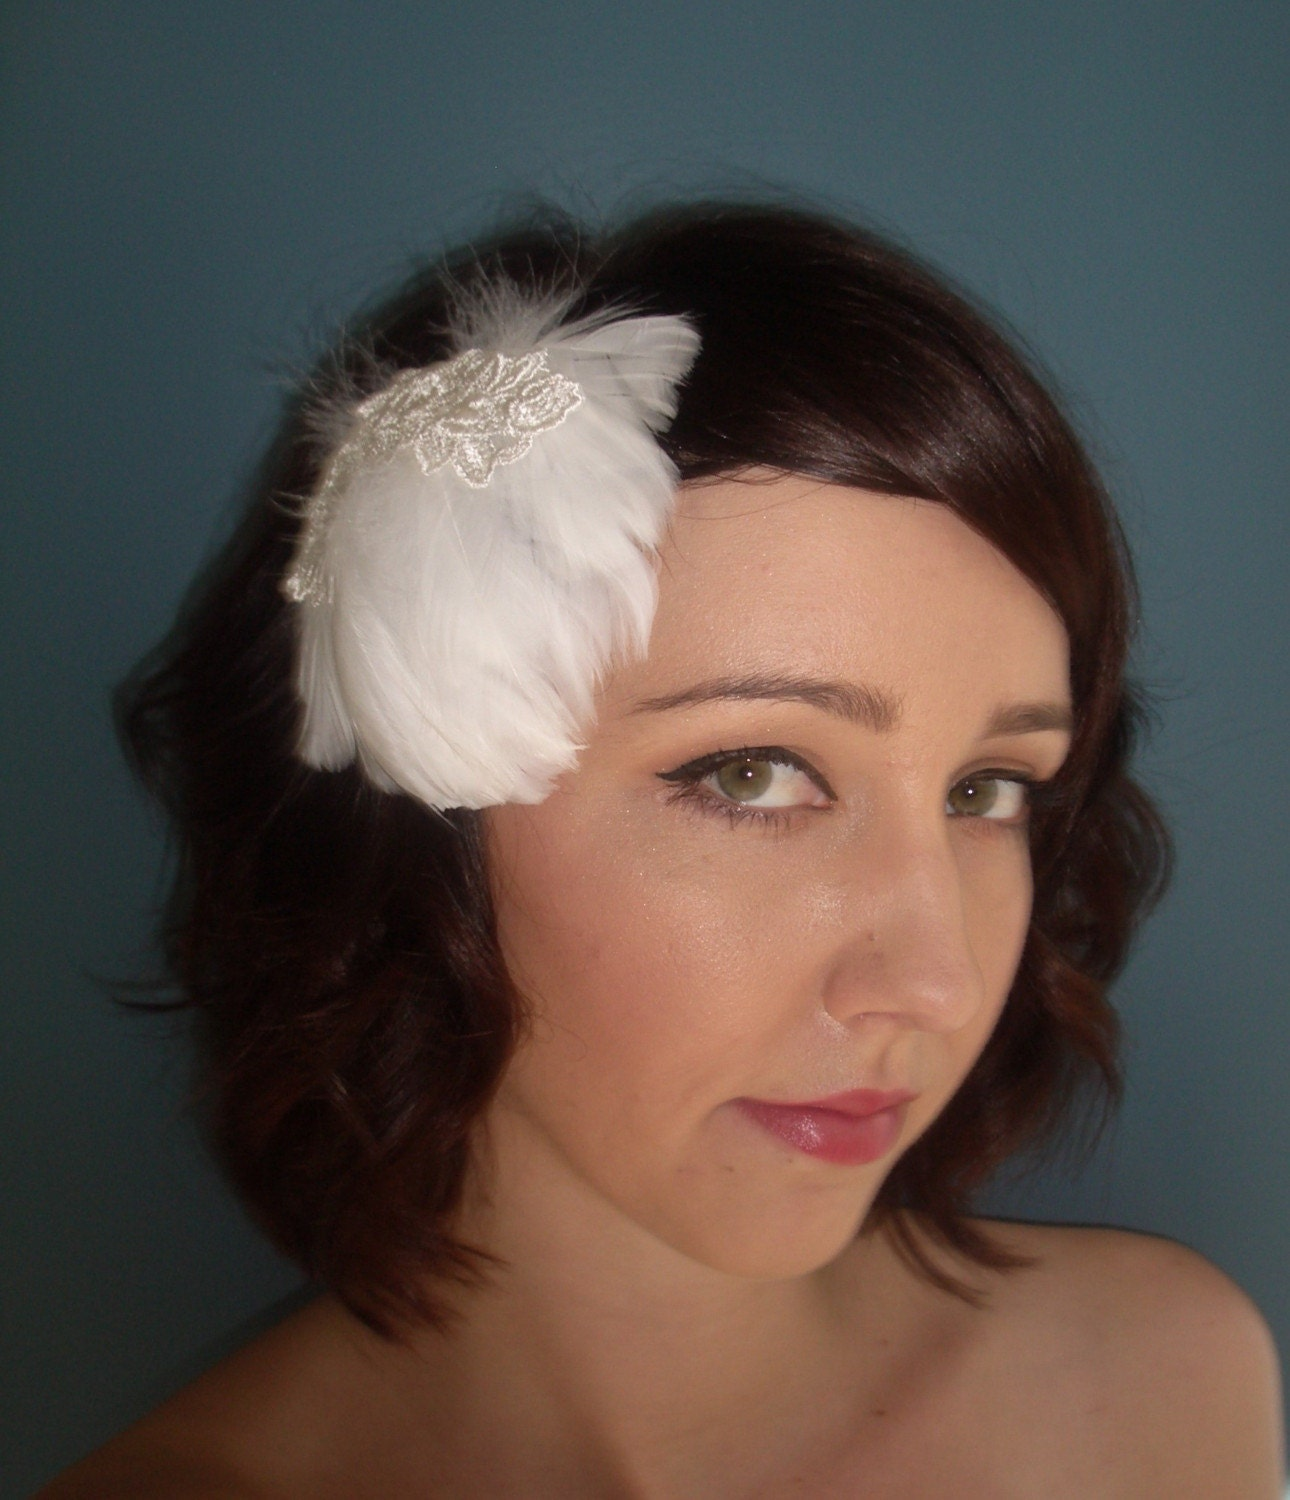 Feathers and vintage lace Fascinator- the Penelope by TessaKim on Etsy from etsy.com